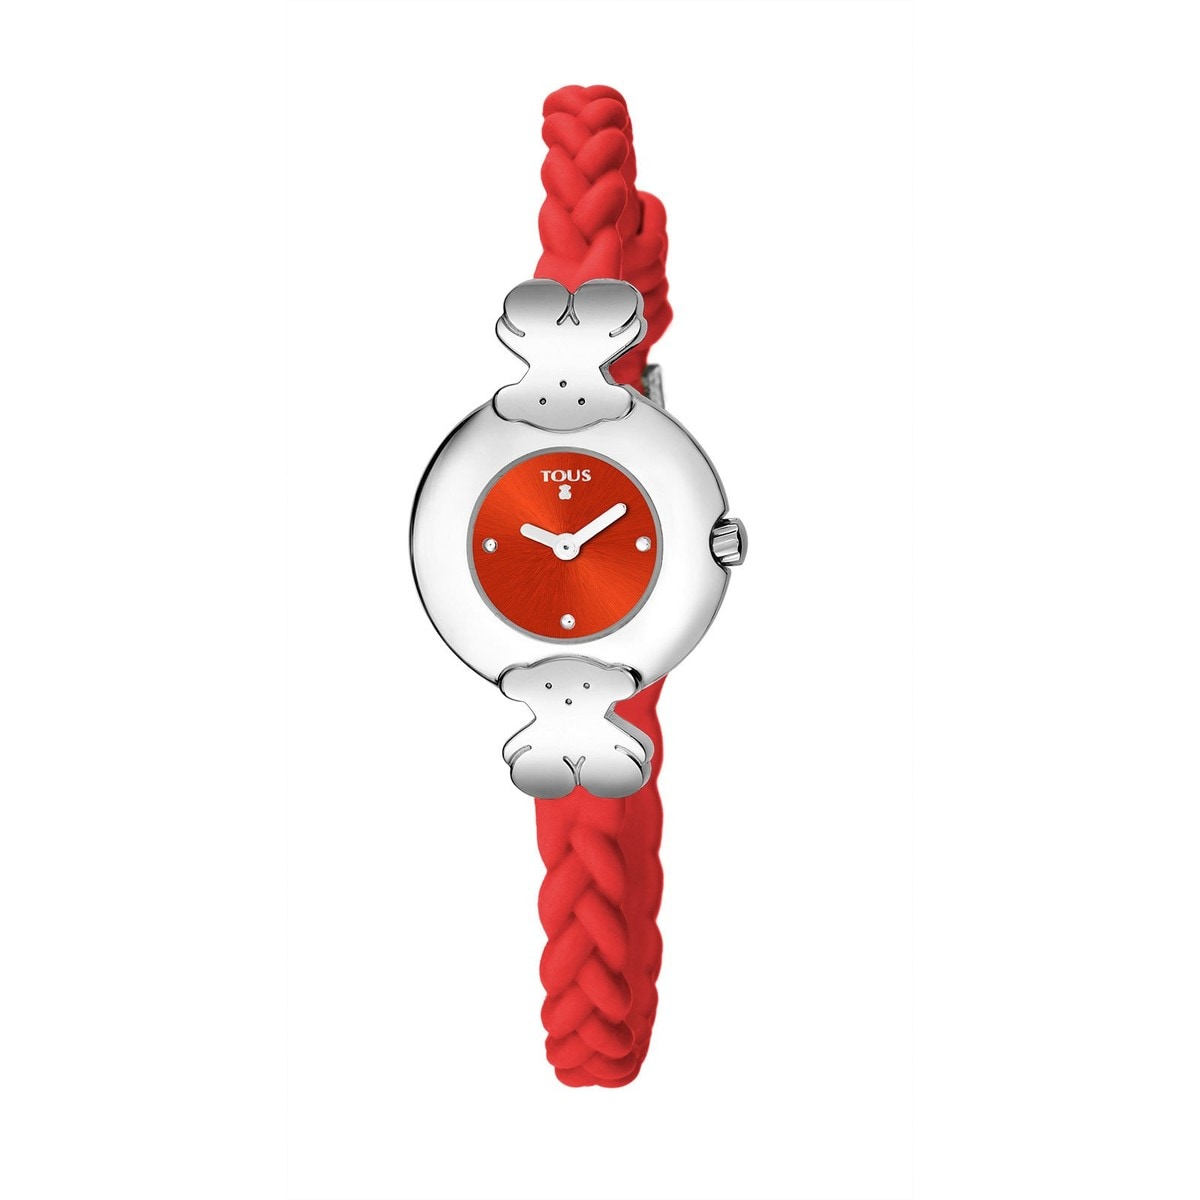 Steel Très Chic Watch with coral Silicone strap